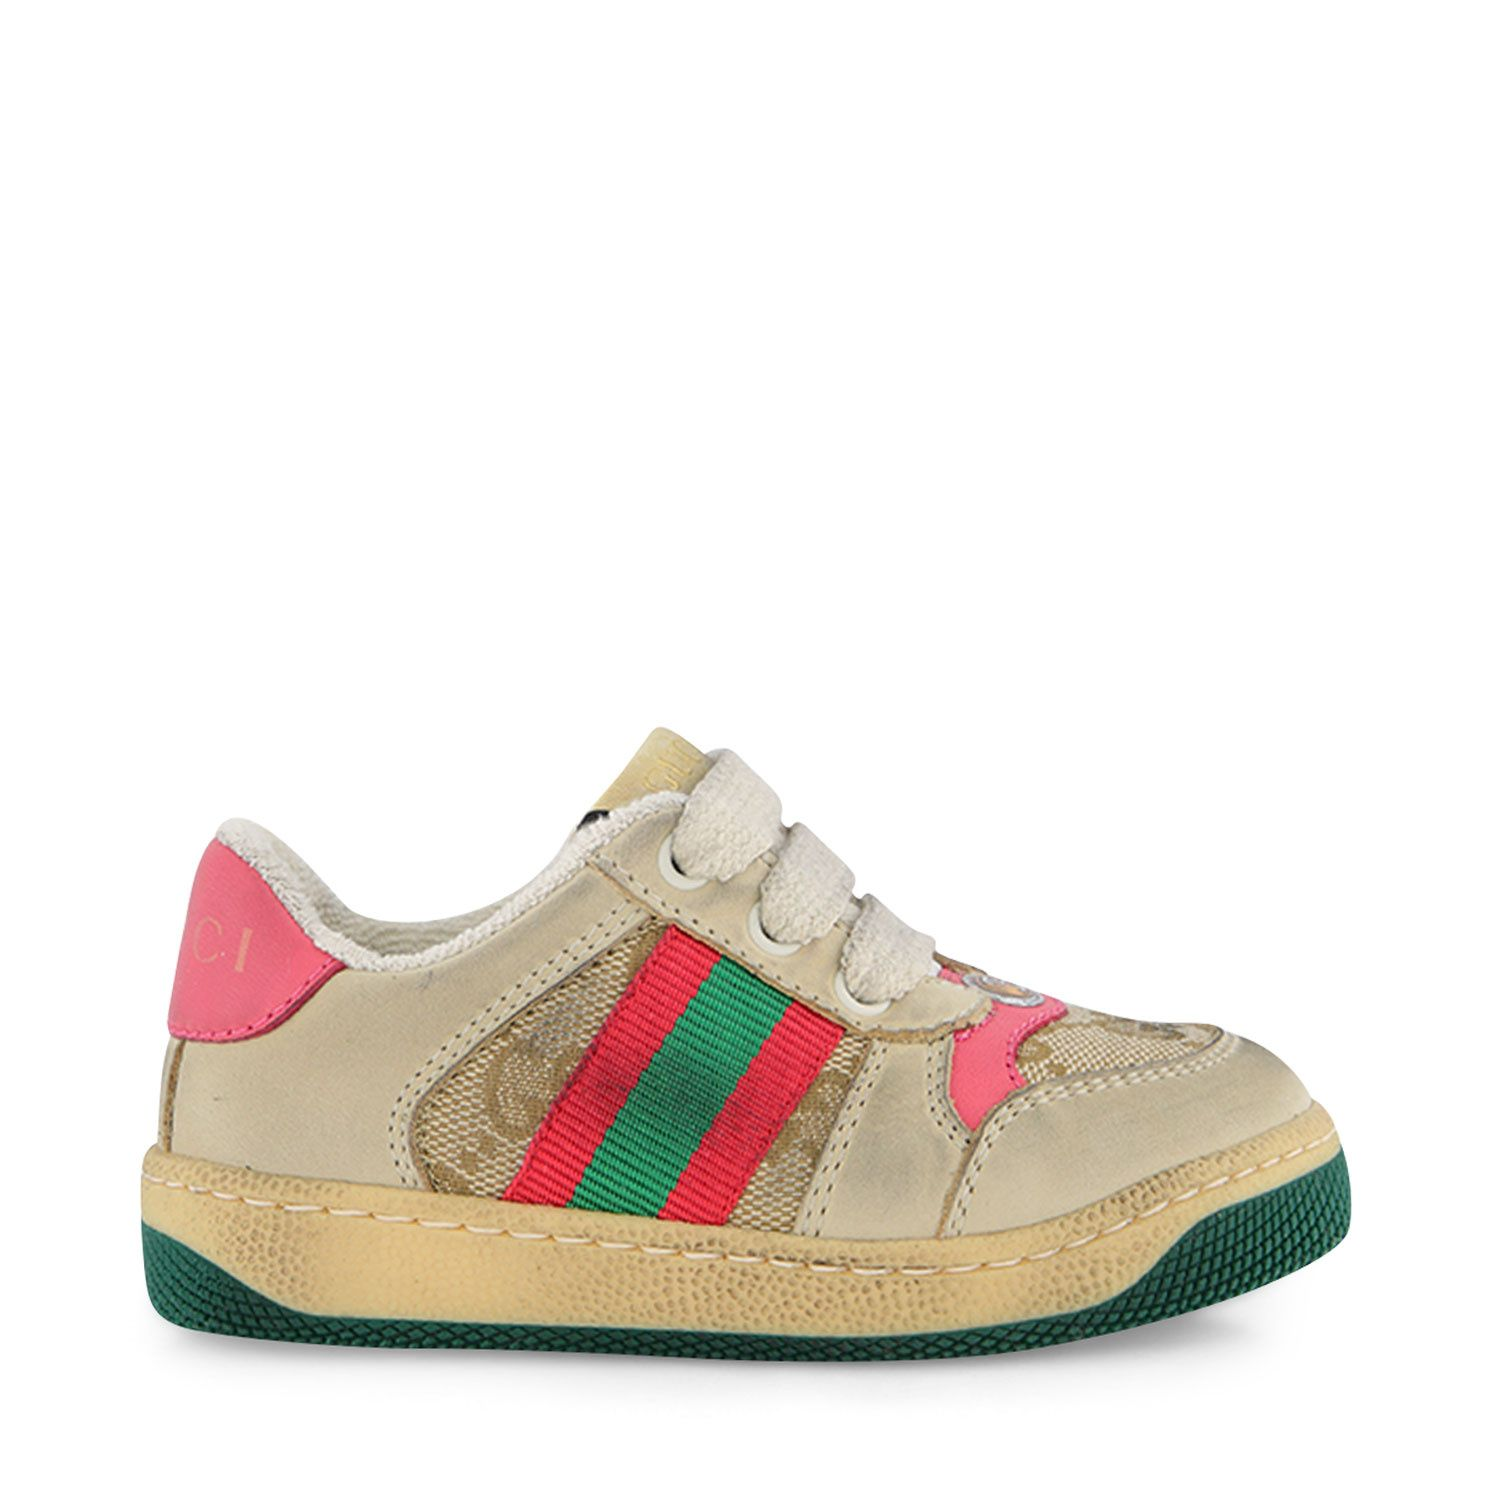 Picture of Gucci 626625 kids sneakers pink